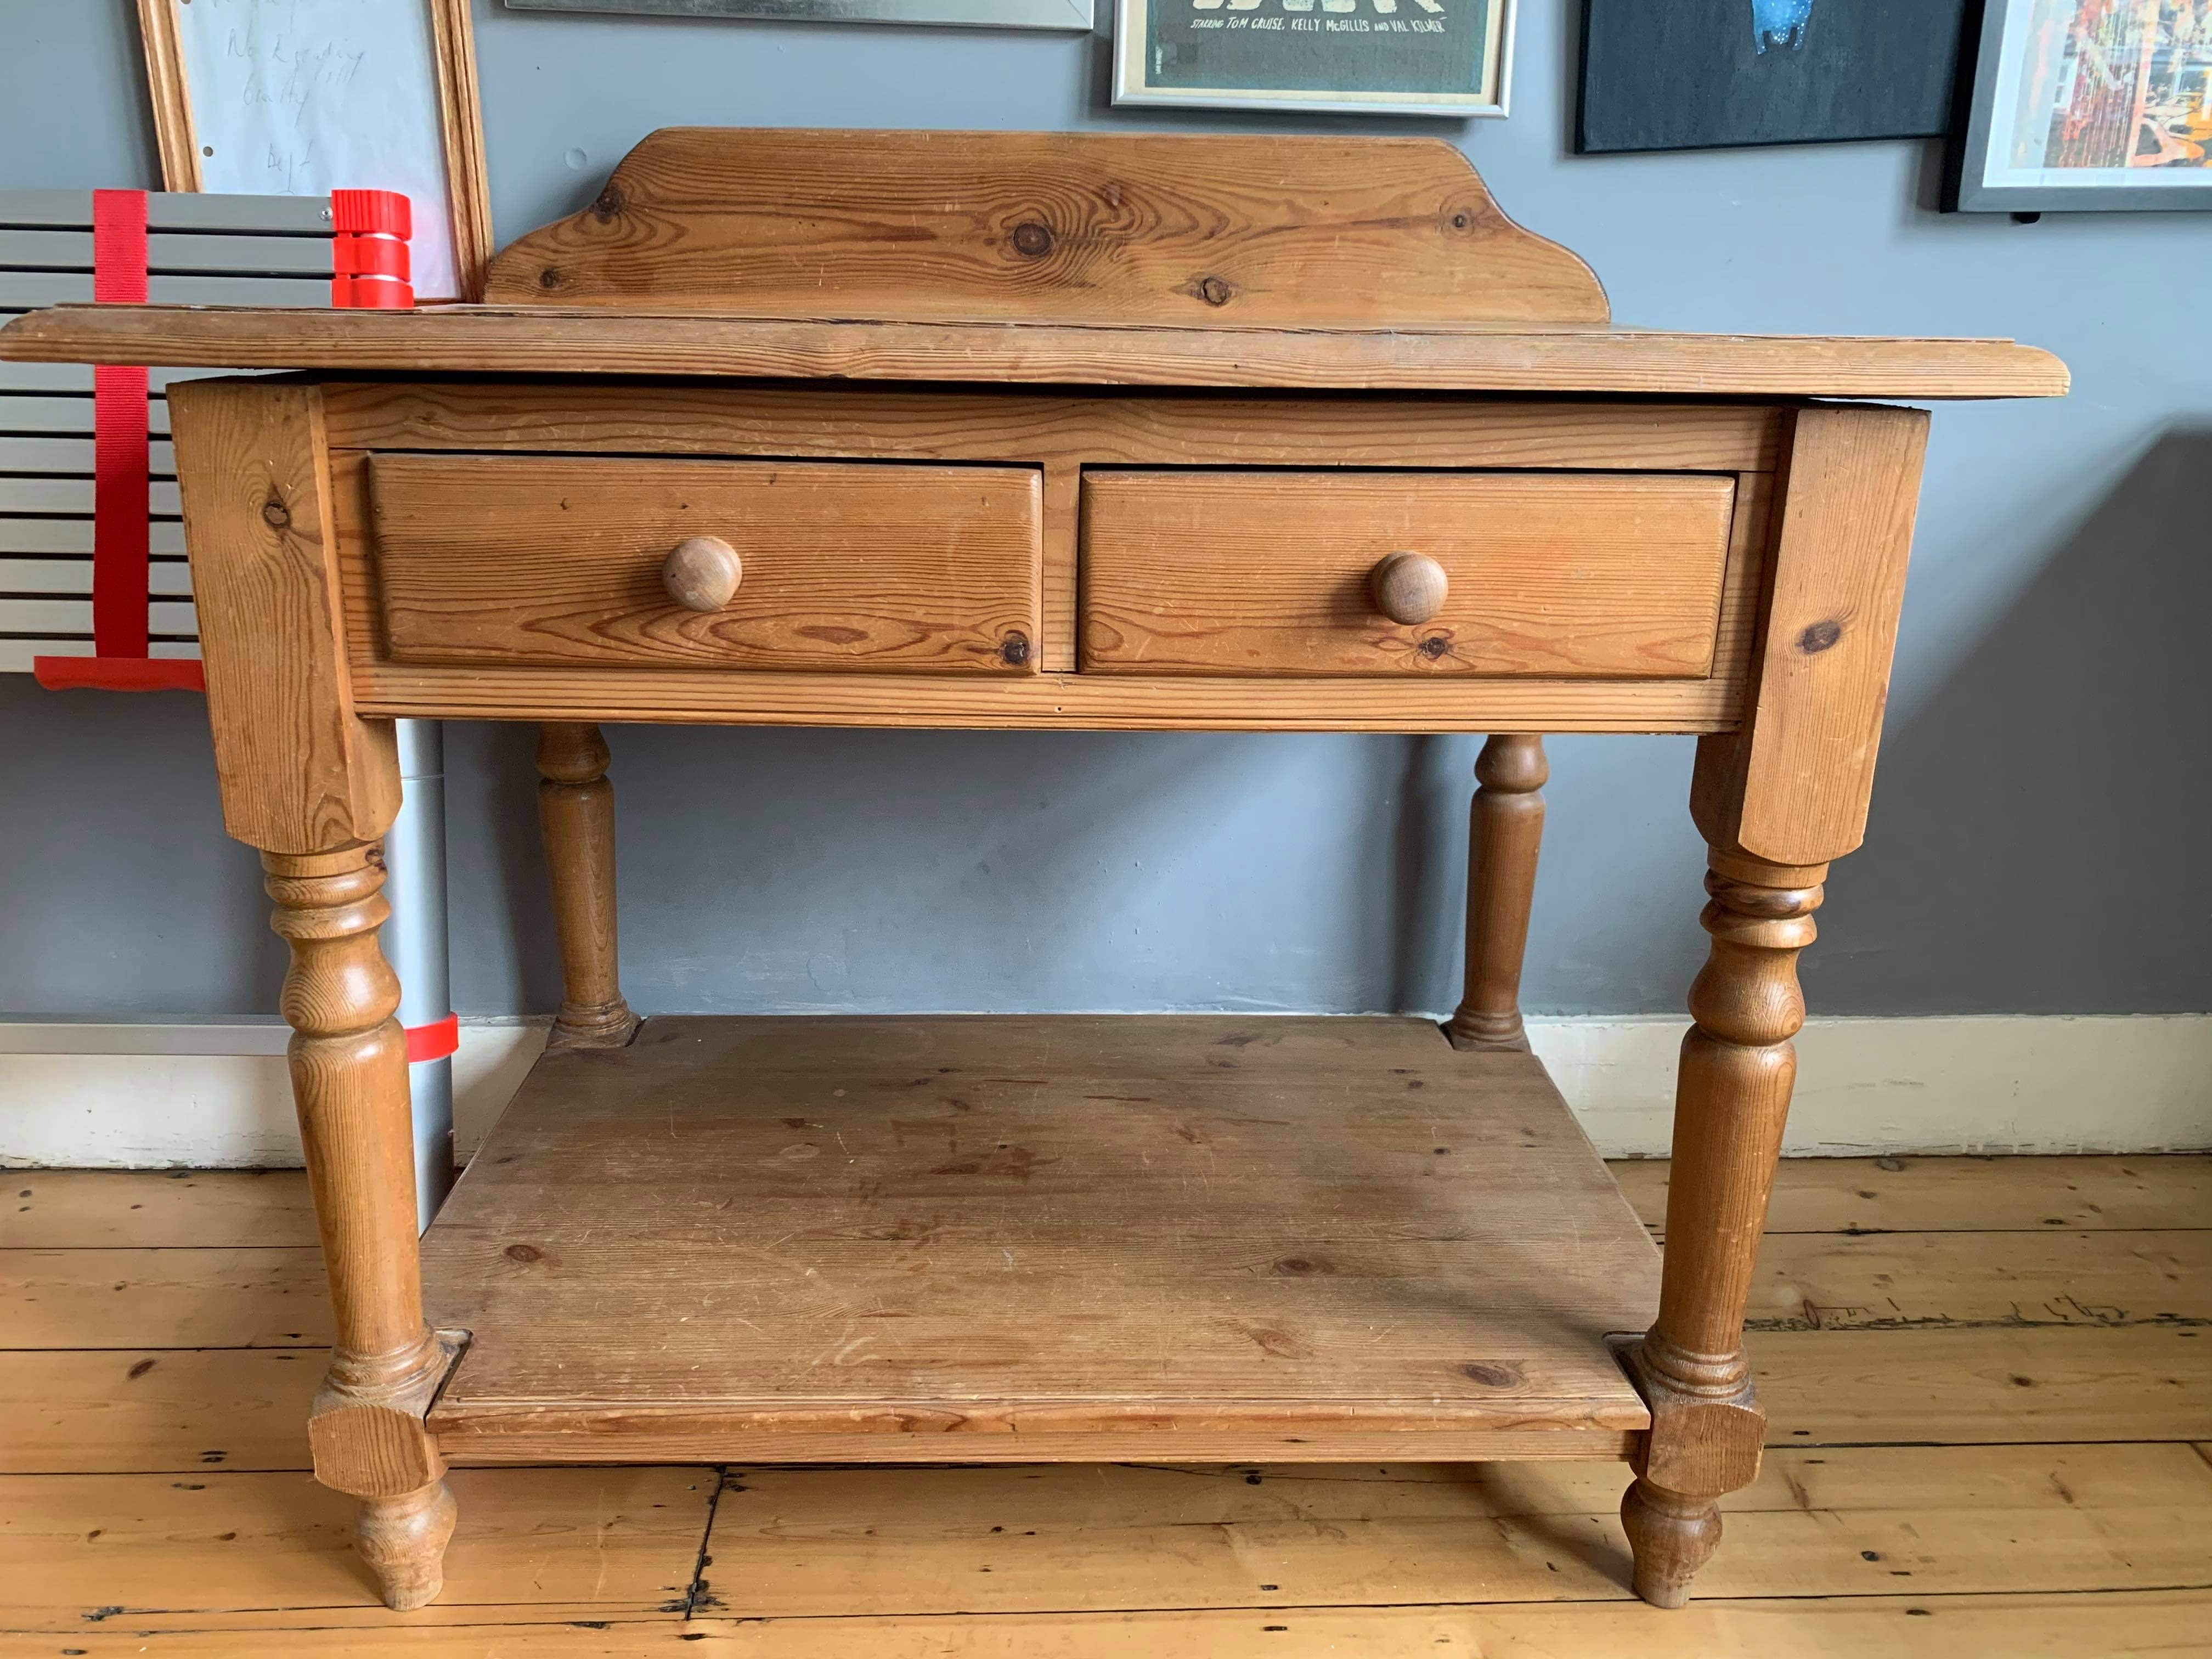 Ikea Galant Glass Top Desk 160x80 And Pine Changing Table Wanted Offered Se23 Forum